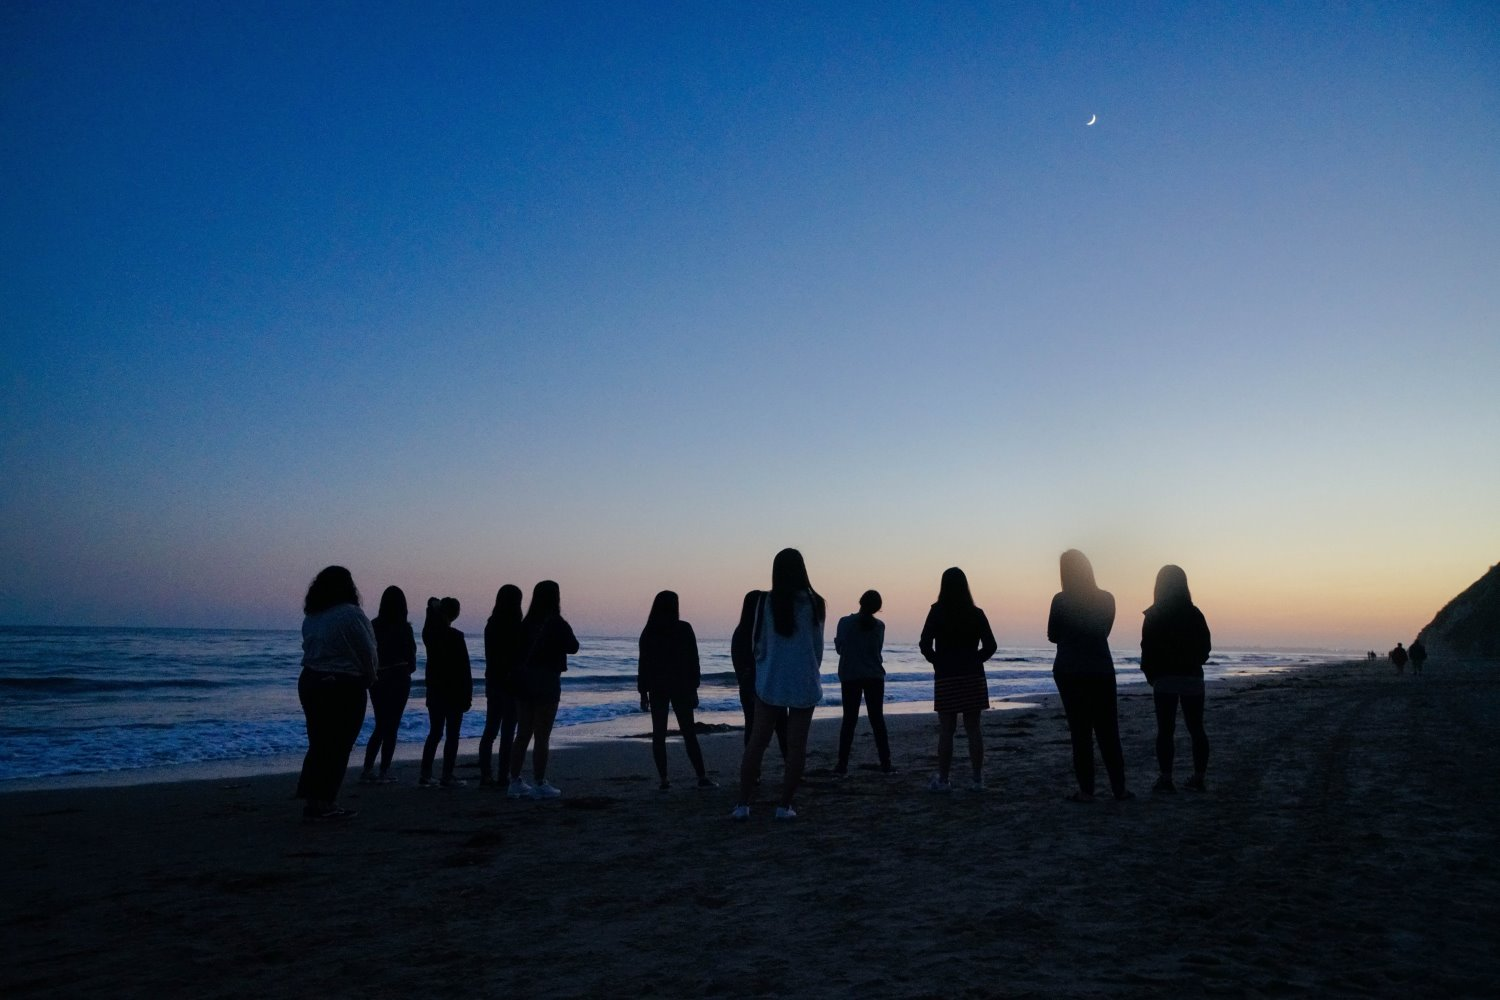 silhouette of people on a beach